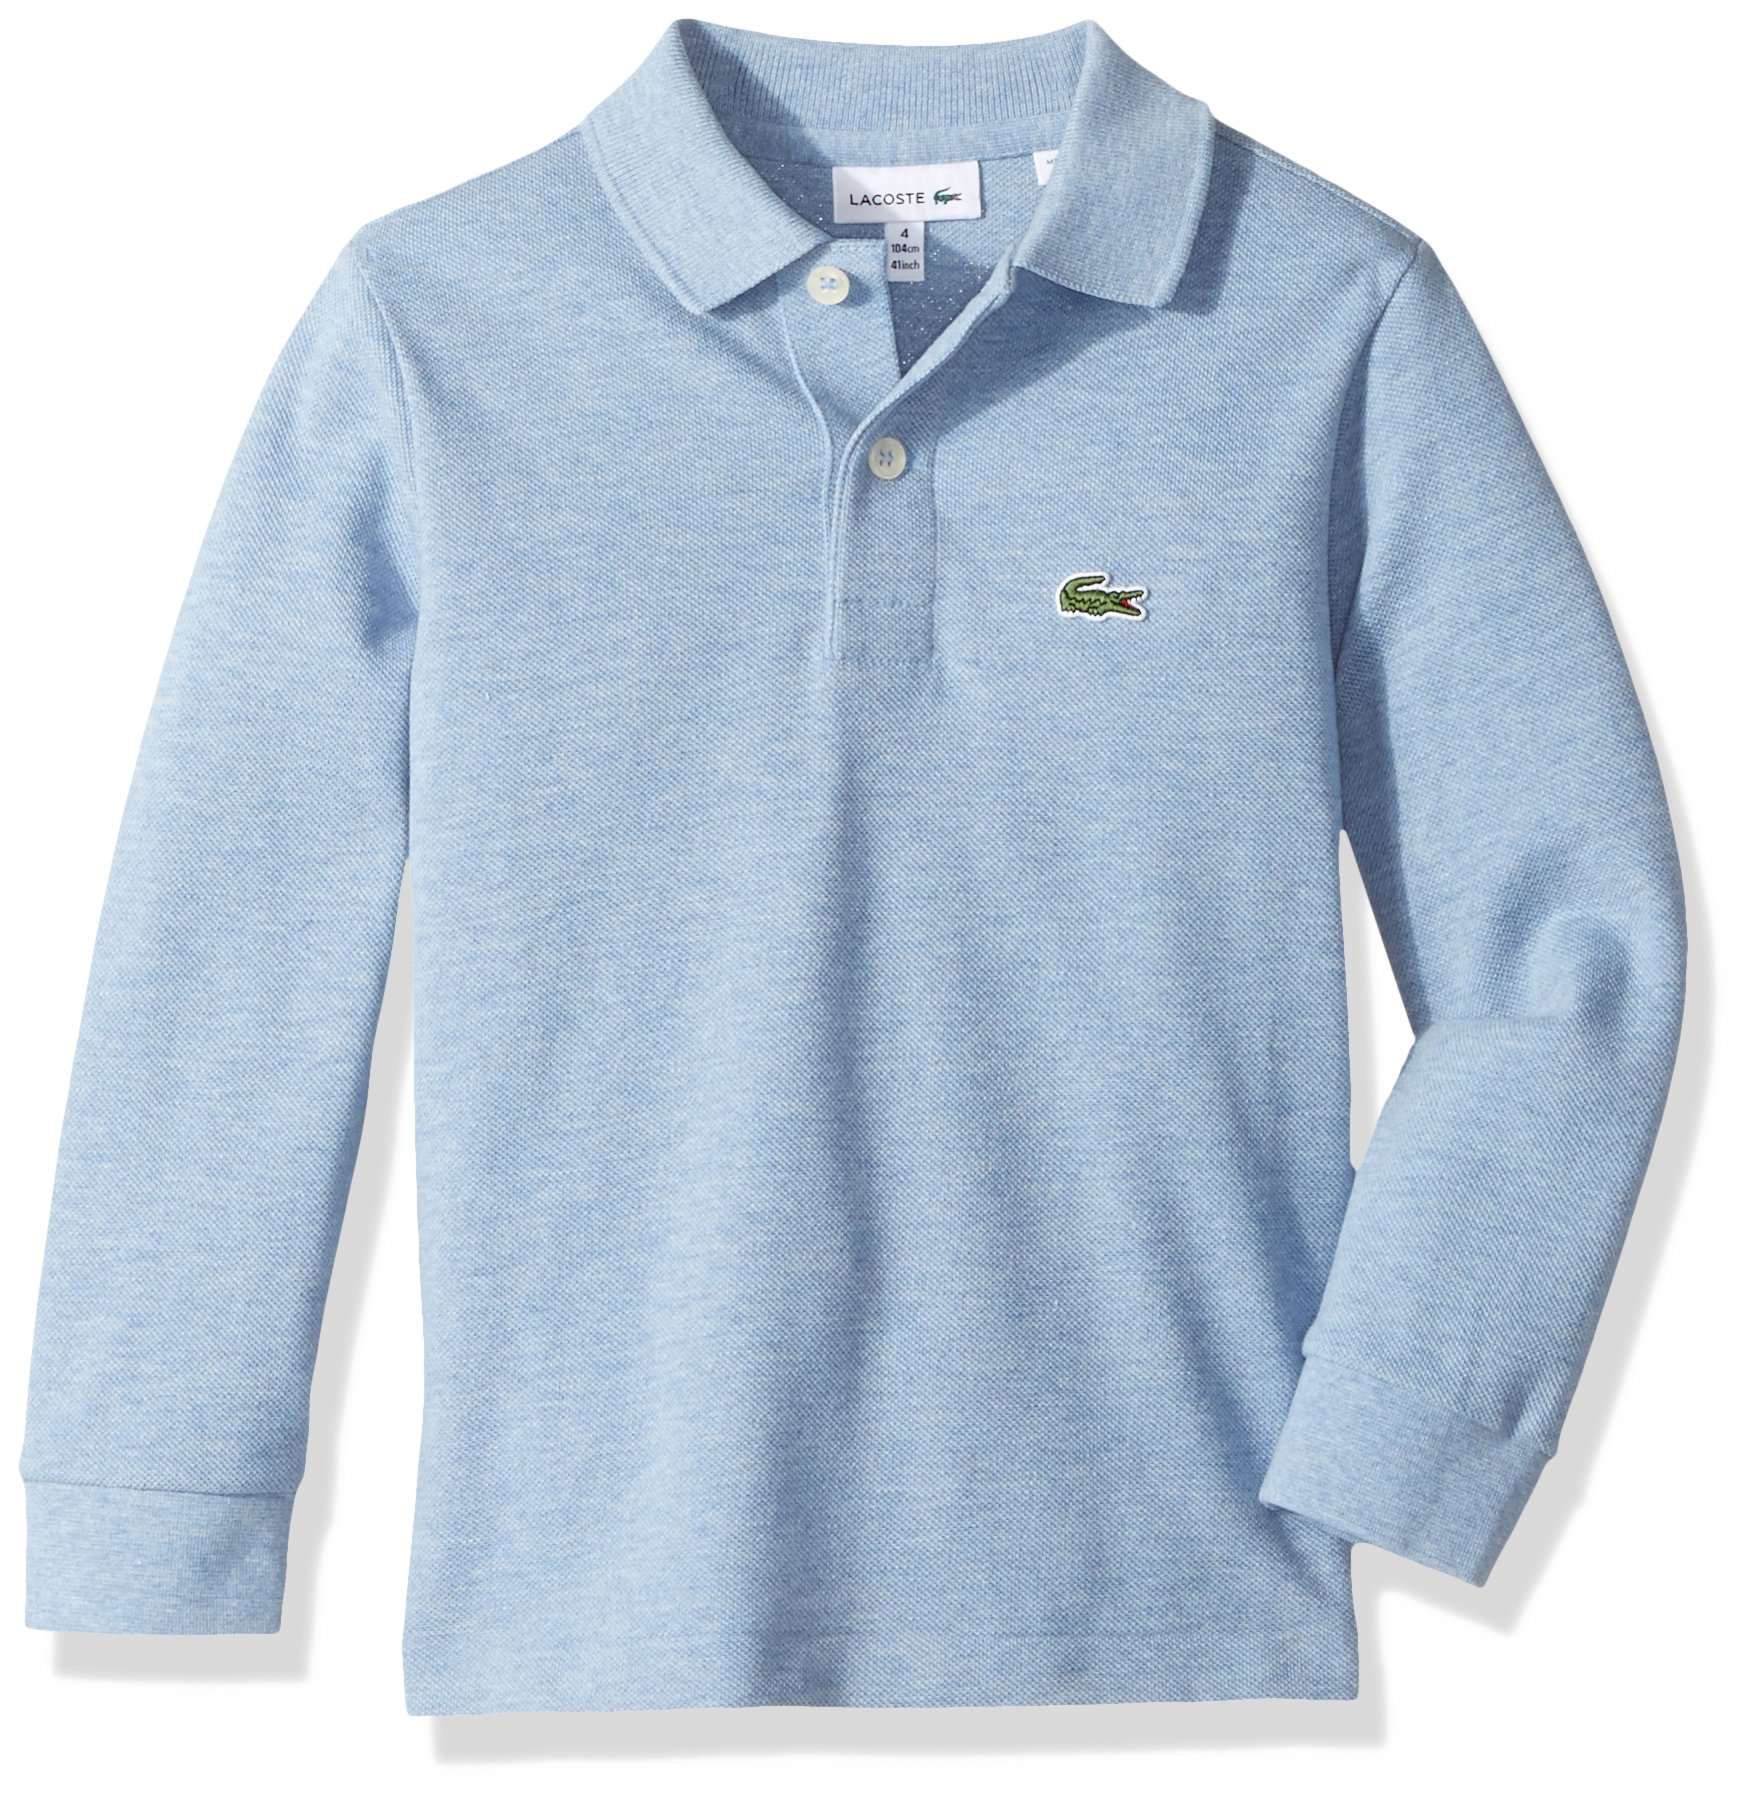 Lacoste Boy Long Sleeve Classic Solid Pique Polo, Cloudy Blue Chine, 6